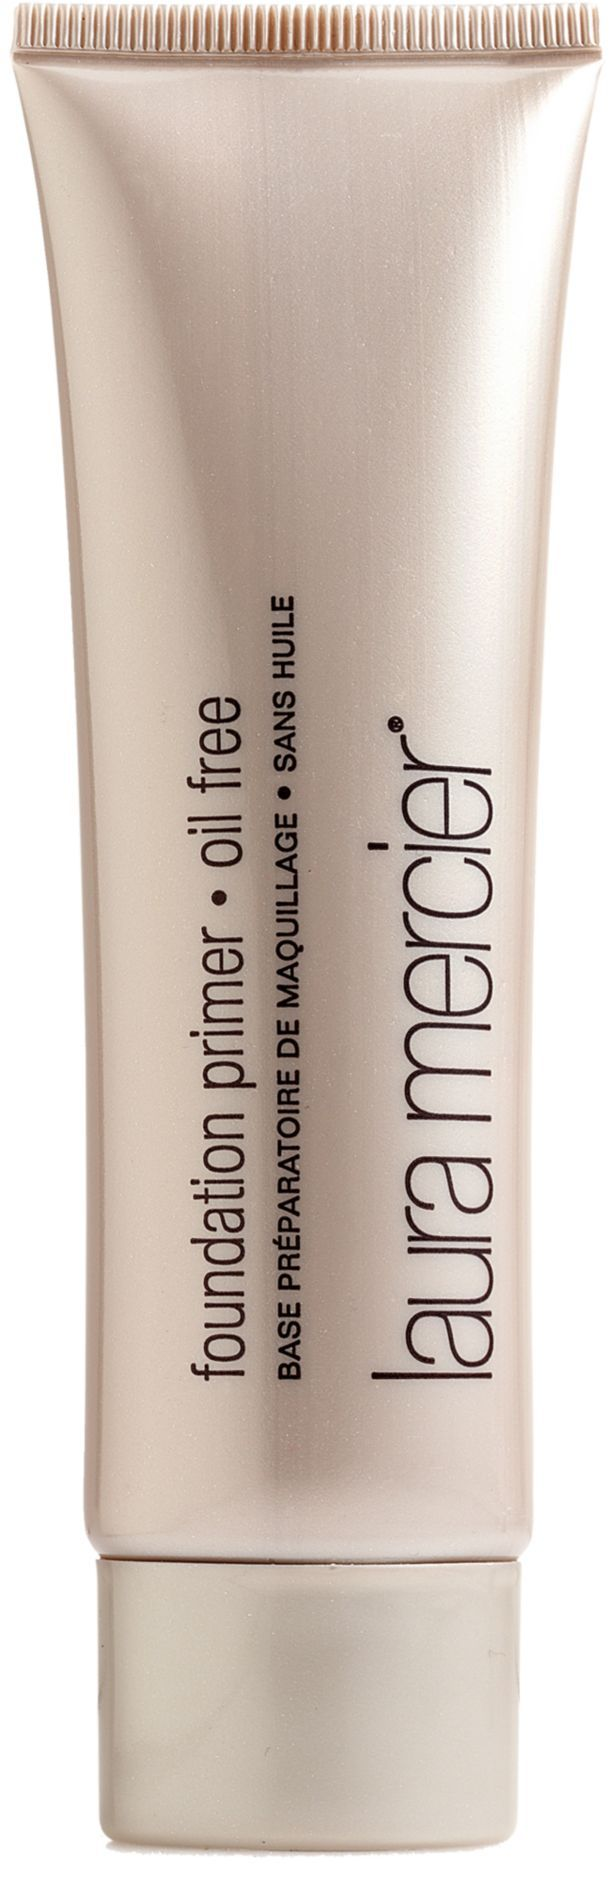 Laura Mercier Foundation Primer is a lightweight, creamy gel meant to be used prior to foundation, creating an invisible layer that acts as a buffer to outside elements.